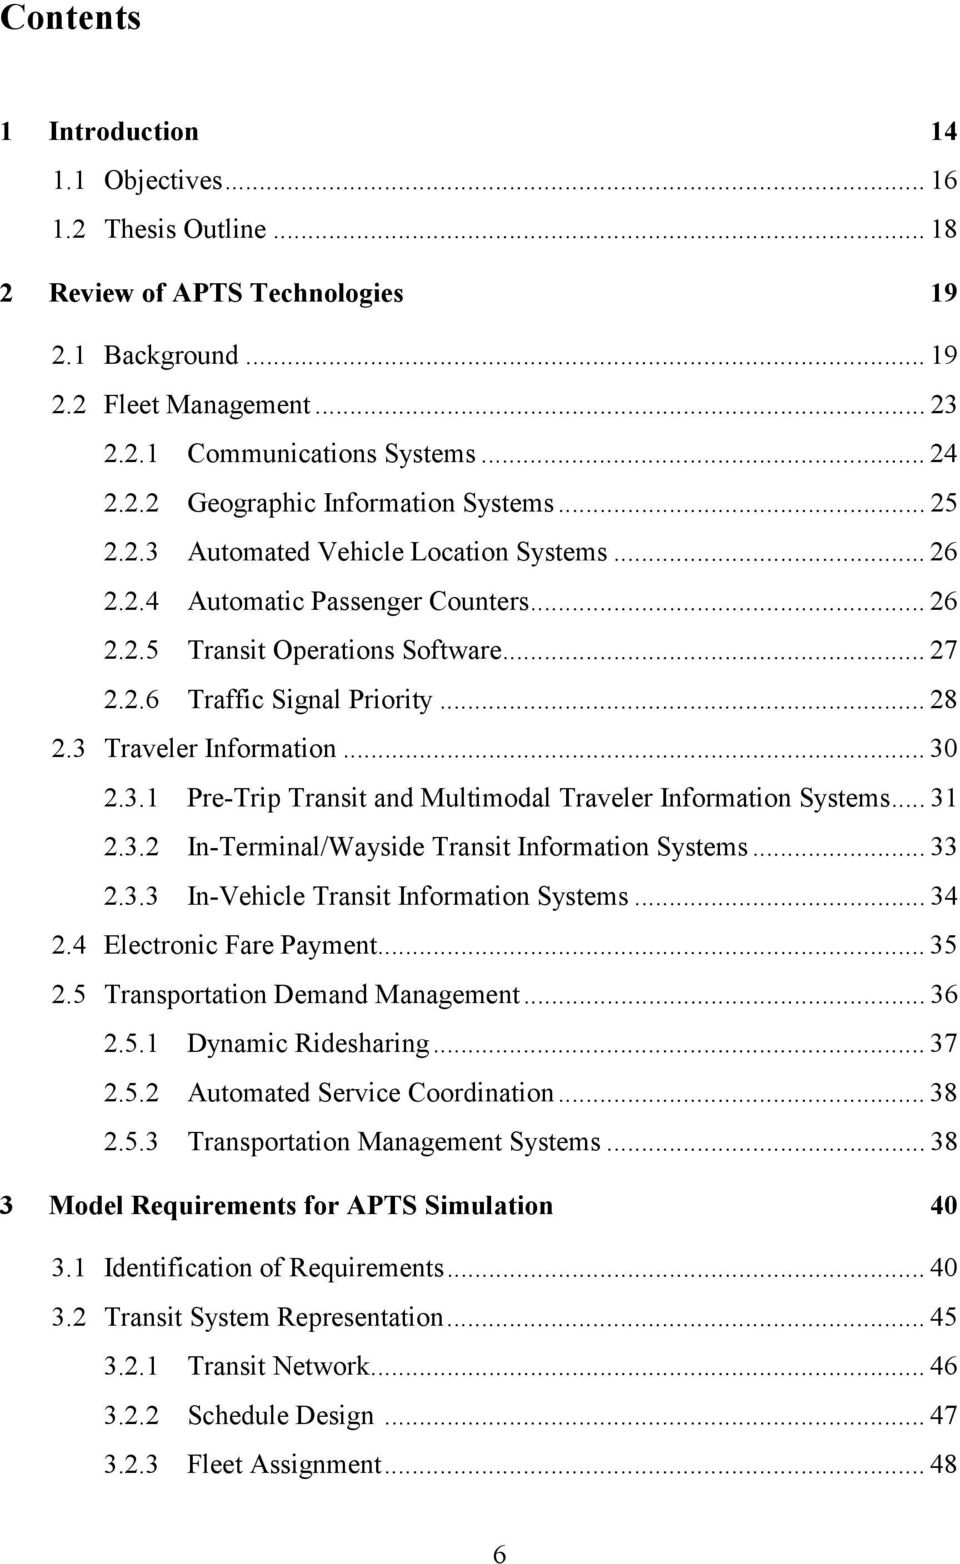 .. 30 2.3.1 Pre-Trip Transit and Multimodal Traveler Information Systems... 31 2.3.2 In-Terminal/Wayside Transit Information Systems... 33 2.3.3 In-Vehicle Transit Information Systems... 34 2.